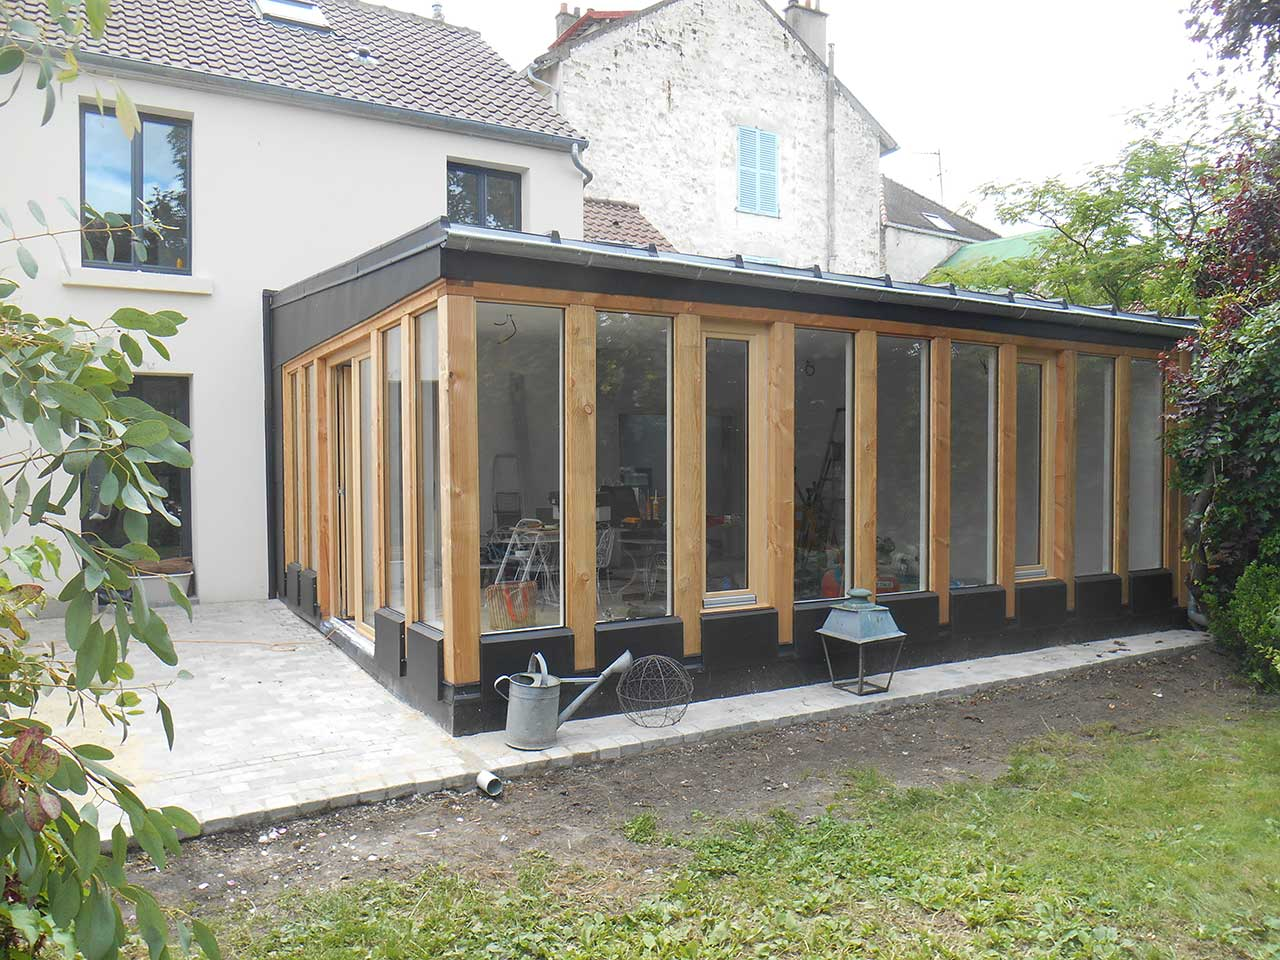 Extension maison en bois et zinc dans un jardin cabanologue for Extension en container